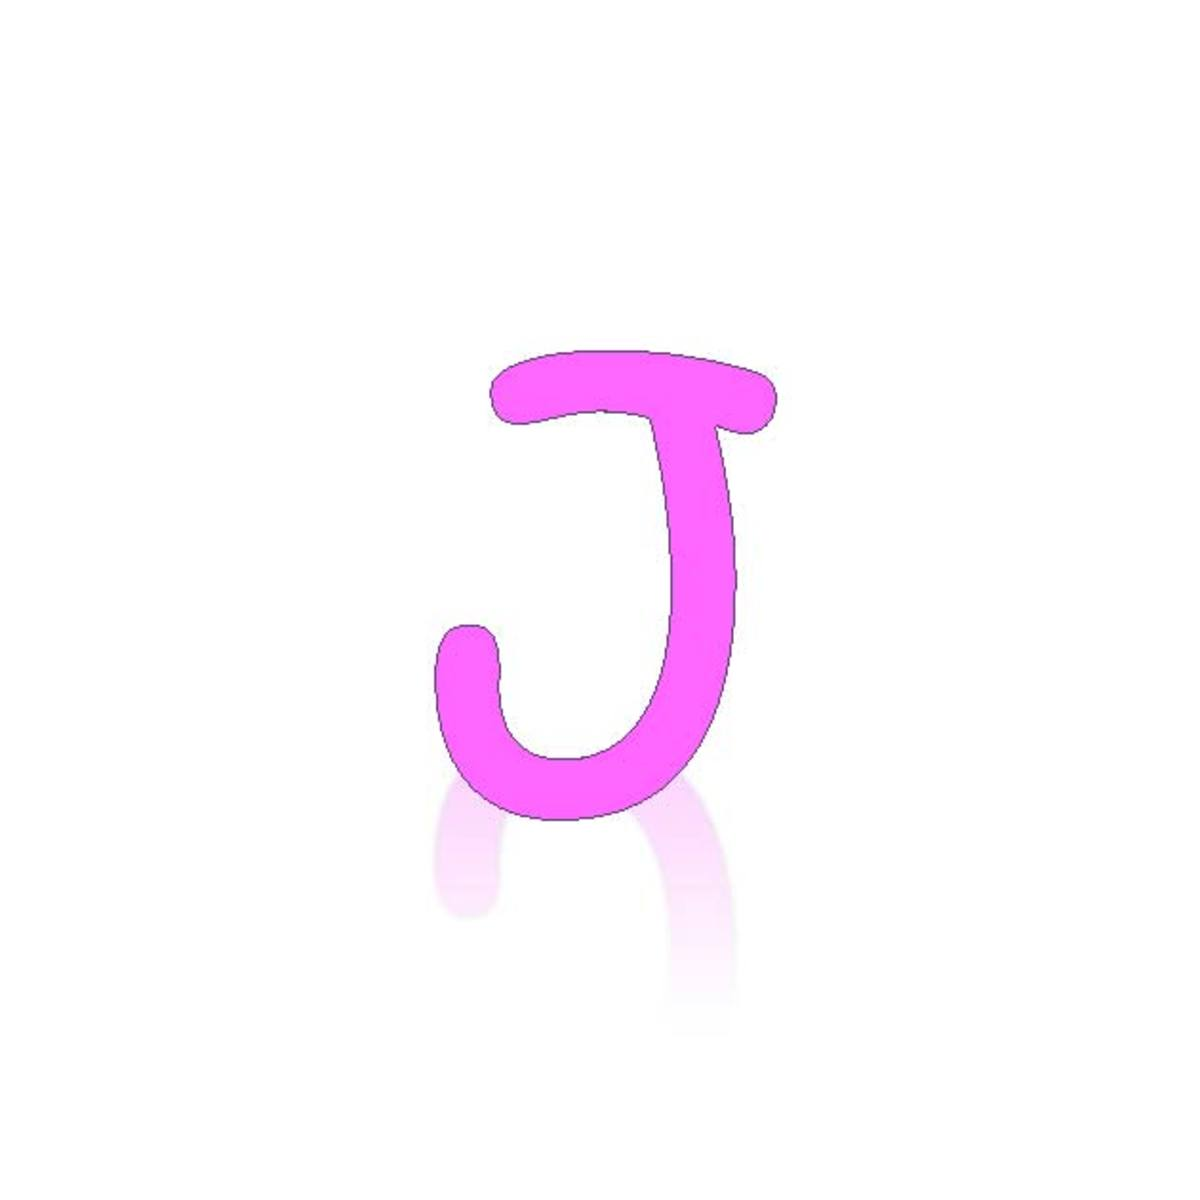 acrostic-name-poems-for-girls-names-starting-with-j